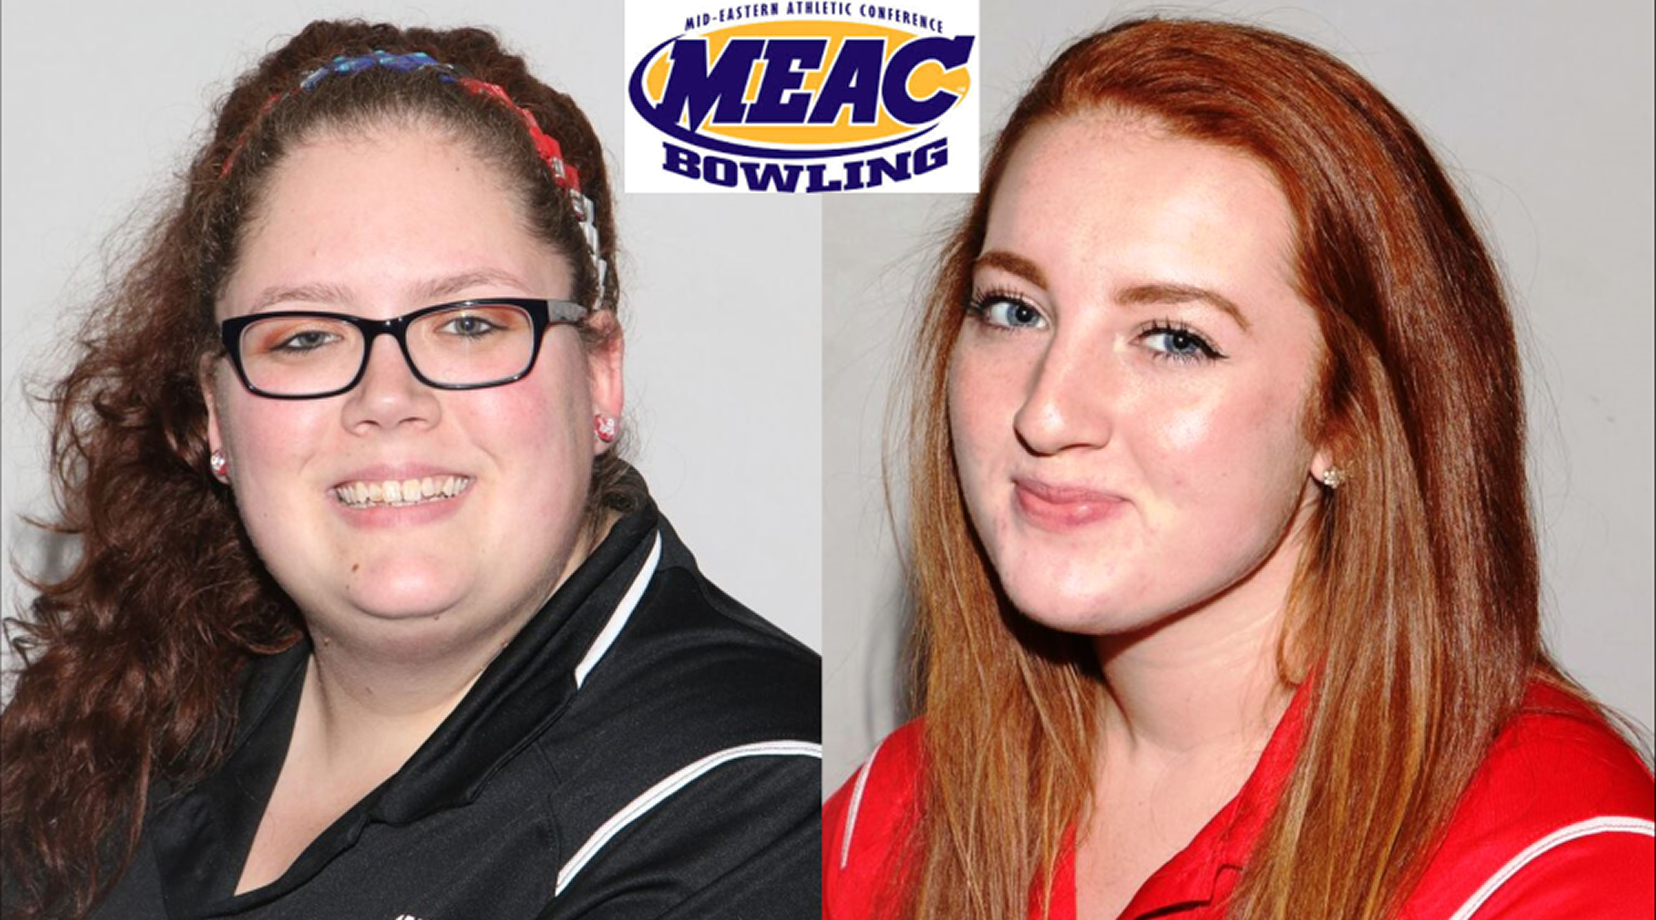 <p>Kayla Stamm, MEAC Coach-of-the-Year. Alexis Neuer, league's 2017-18 Bowler-of-the-Year.</p>